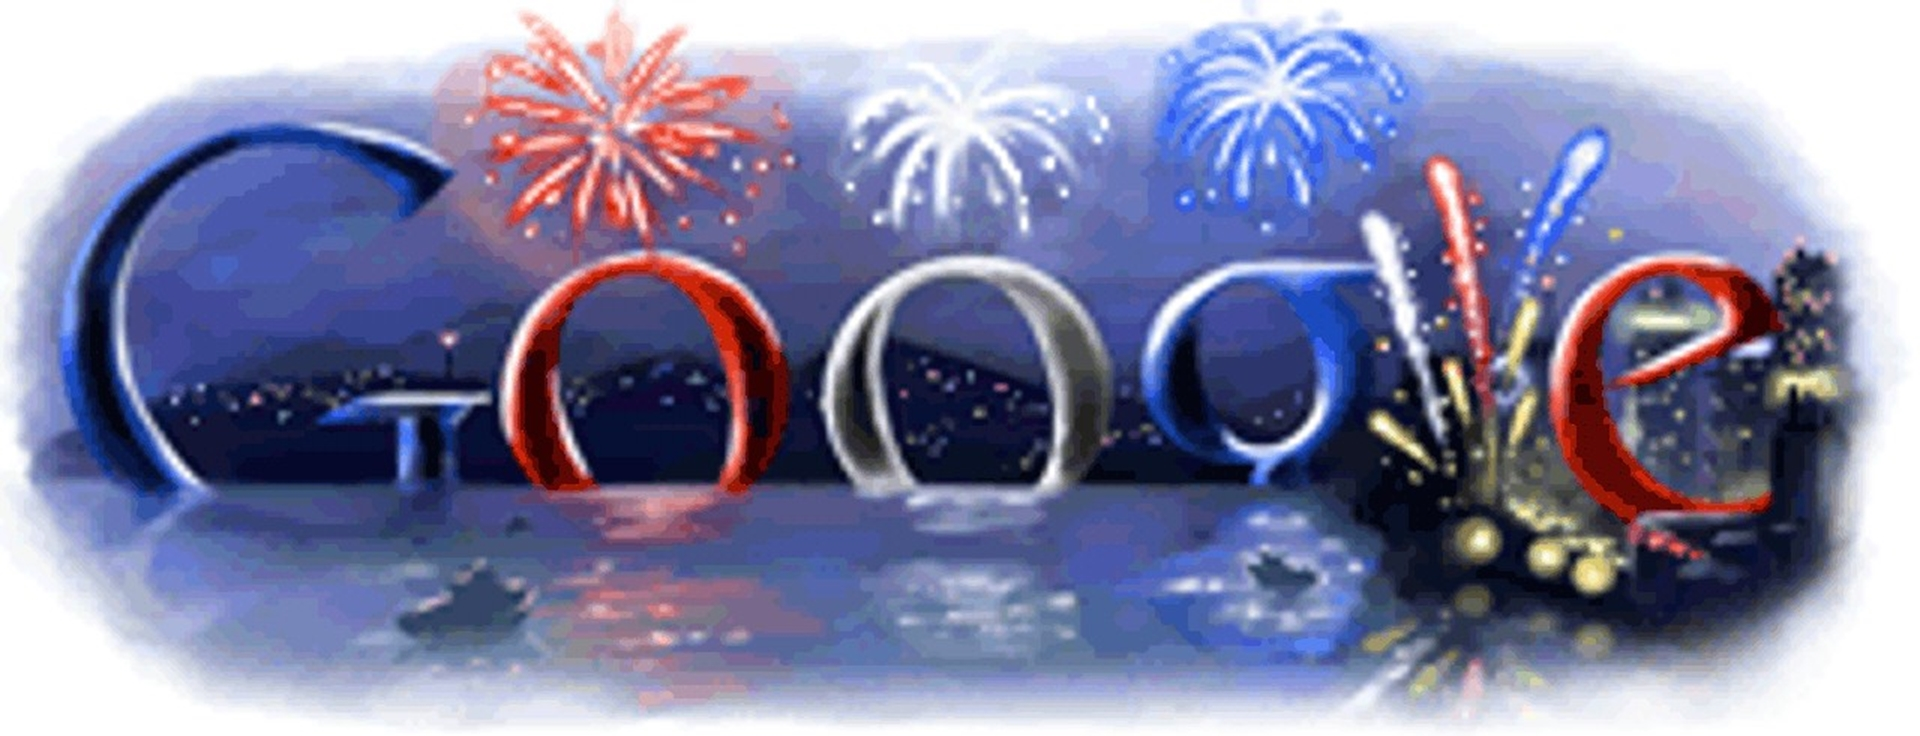 4th of July Google Doodle 2008